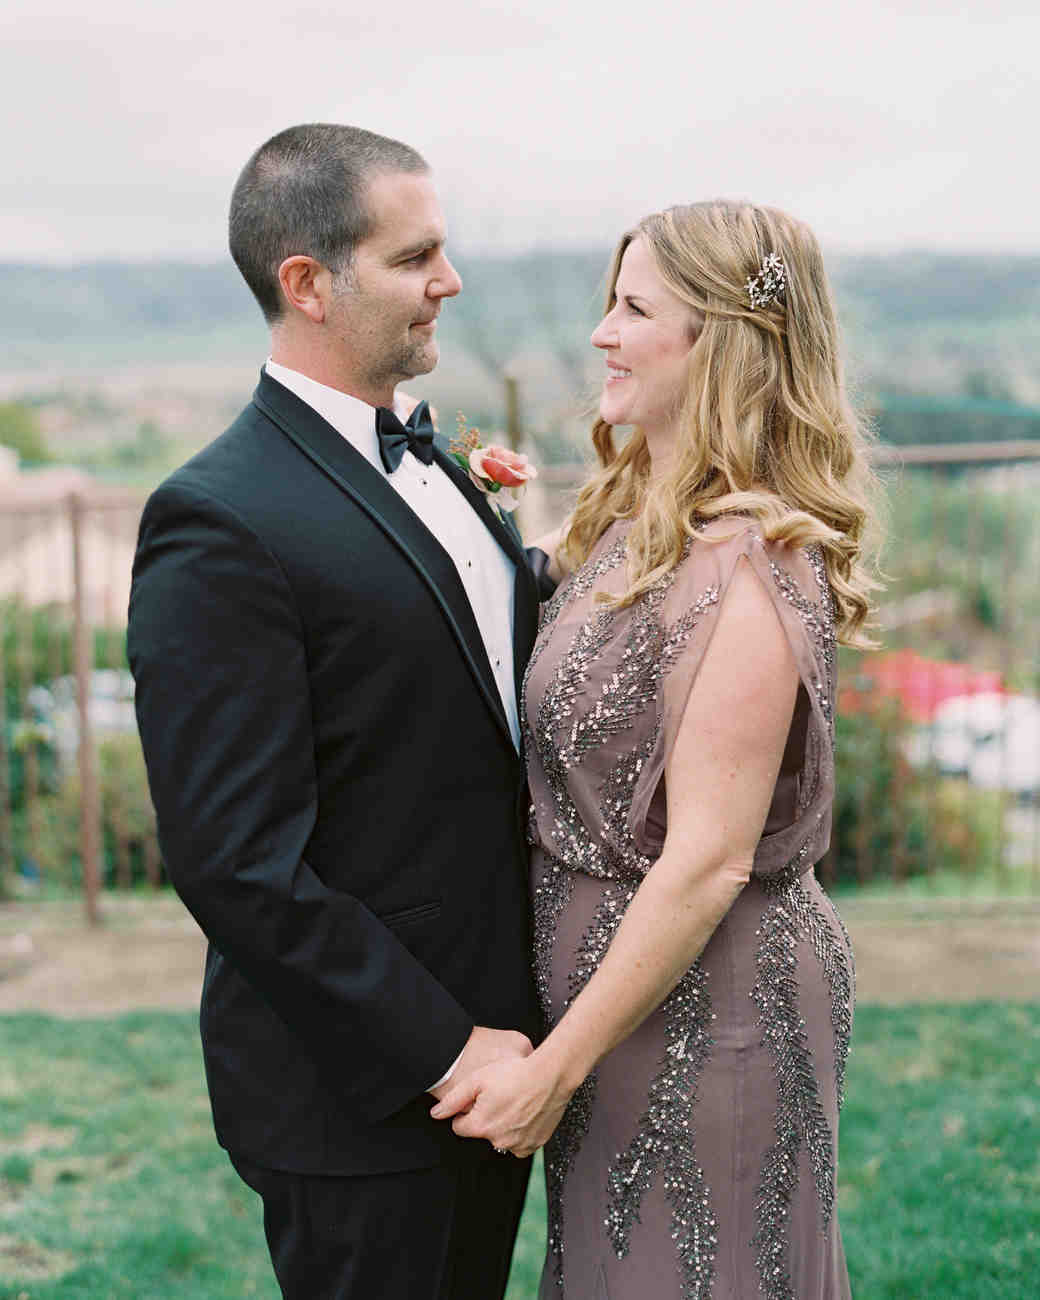 A Surprise Wedding At The Bride S Rose Farm In California